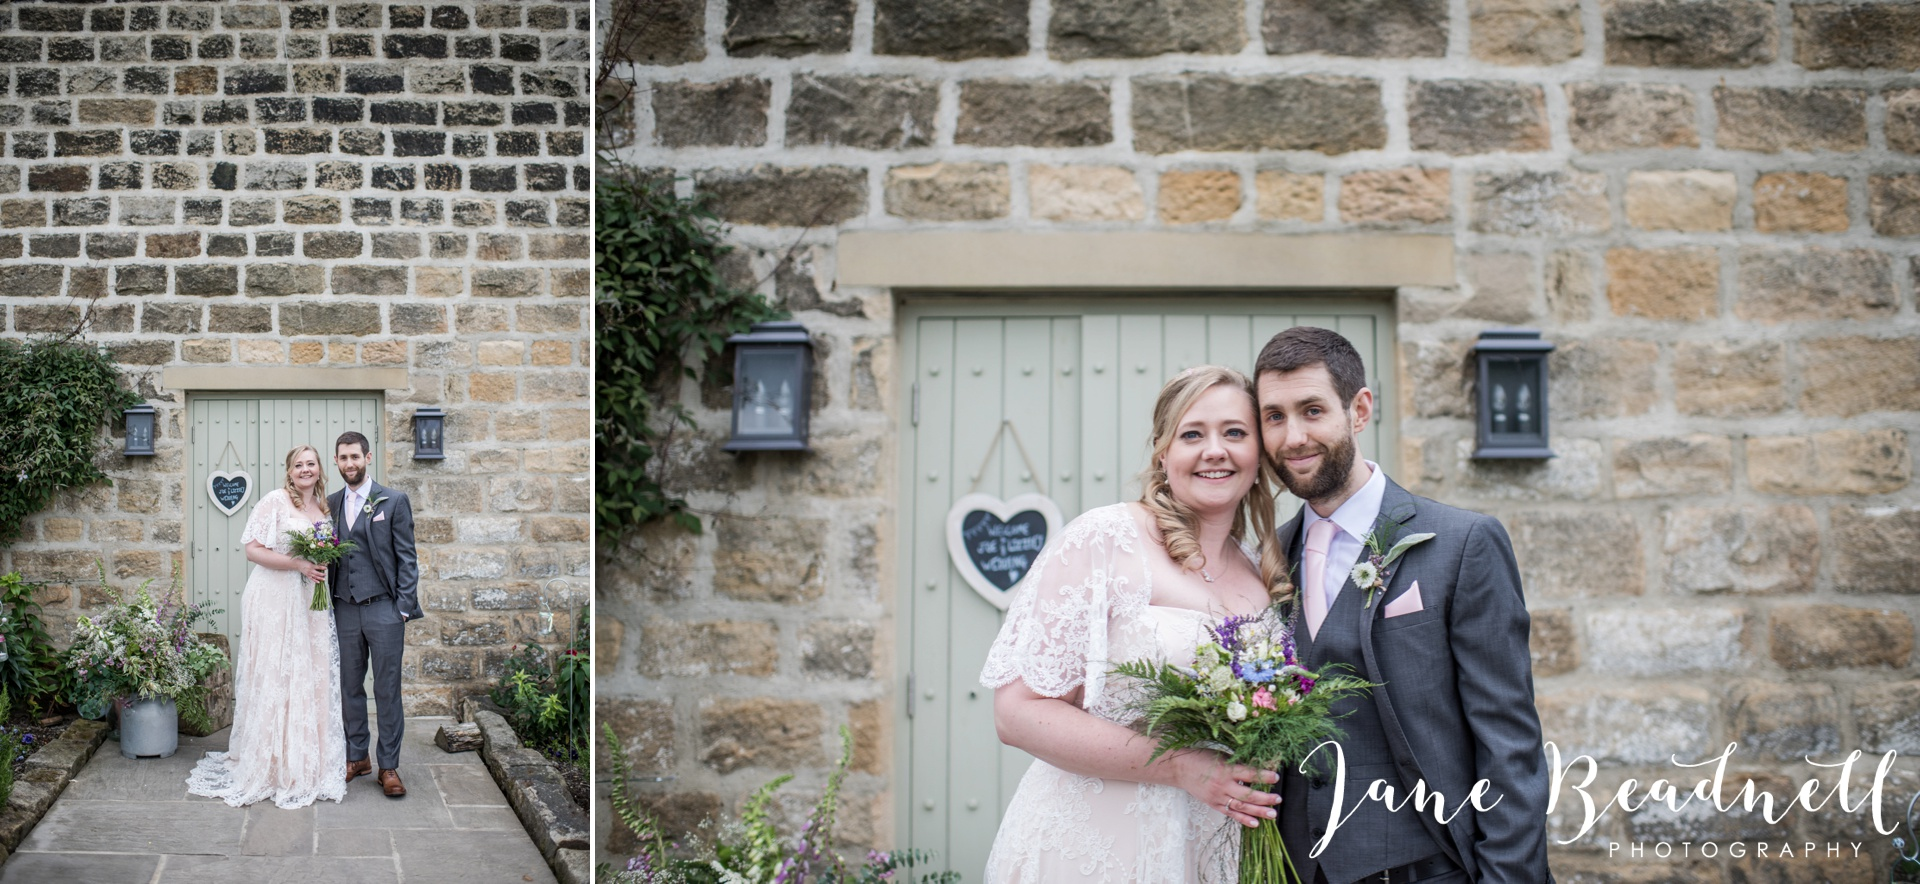 Yorkshire Wedding Photography the cheerful Chilli Barn Wedding by Jane Beadnell Photography_0138